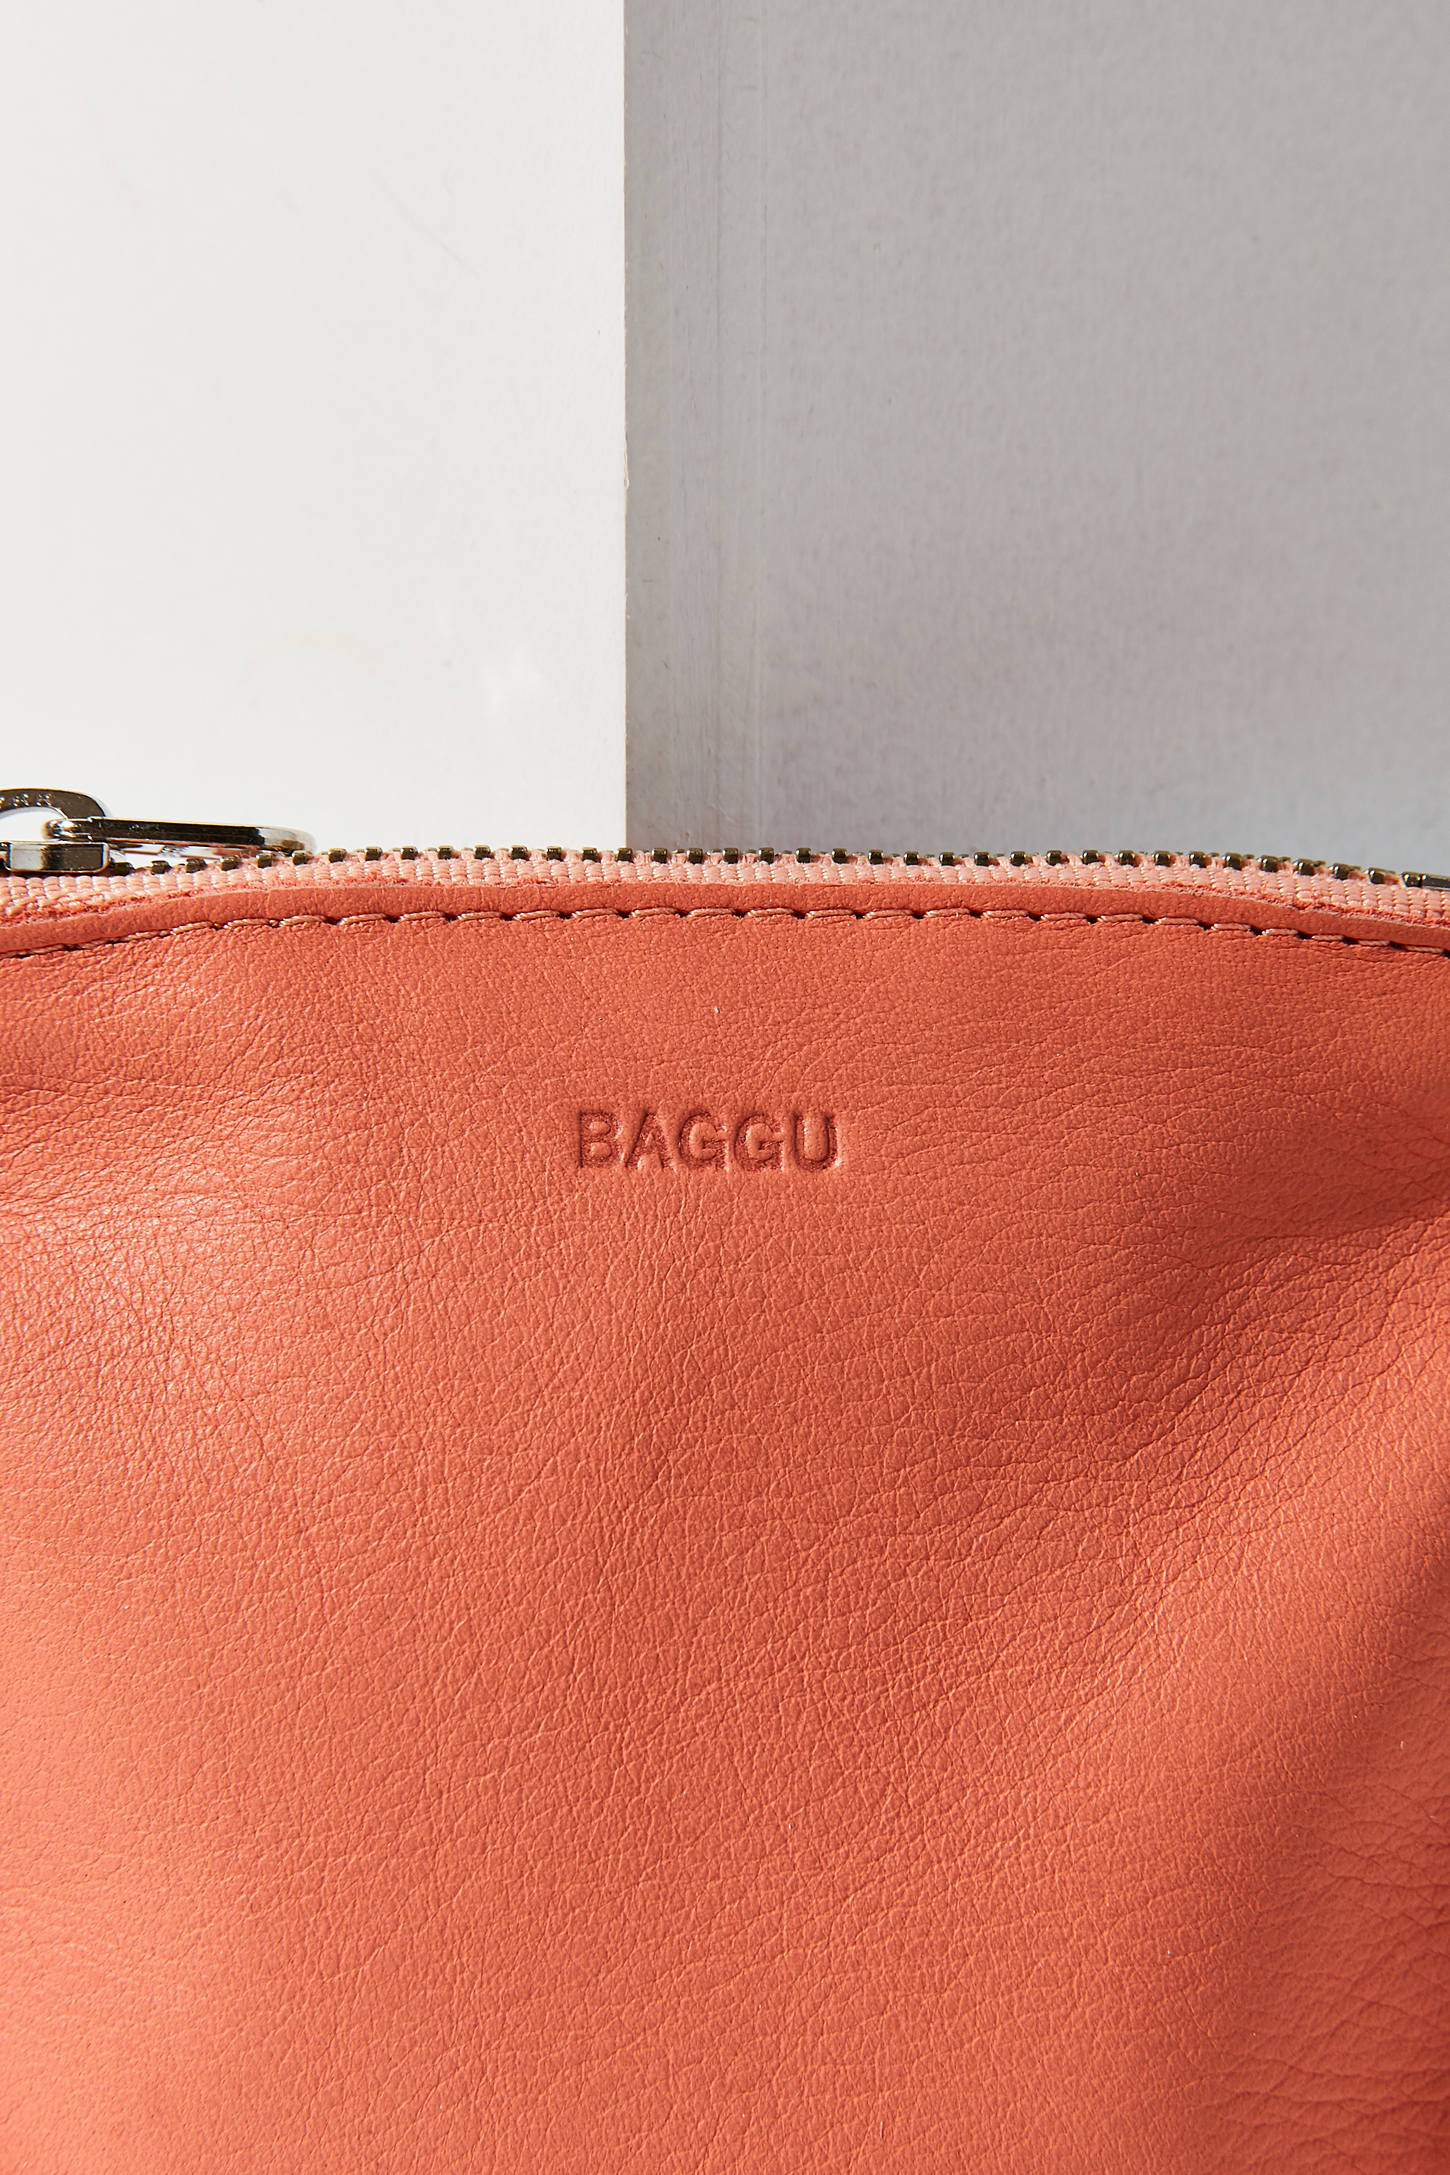 Slide View: 3: BAGGU Small Half-Moon Pouch